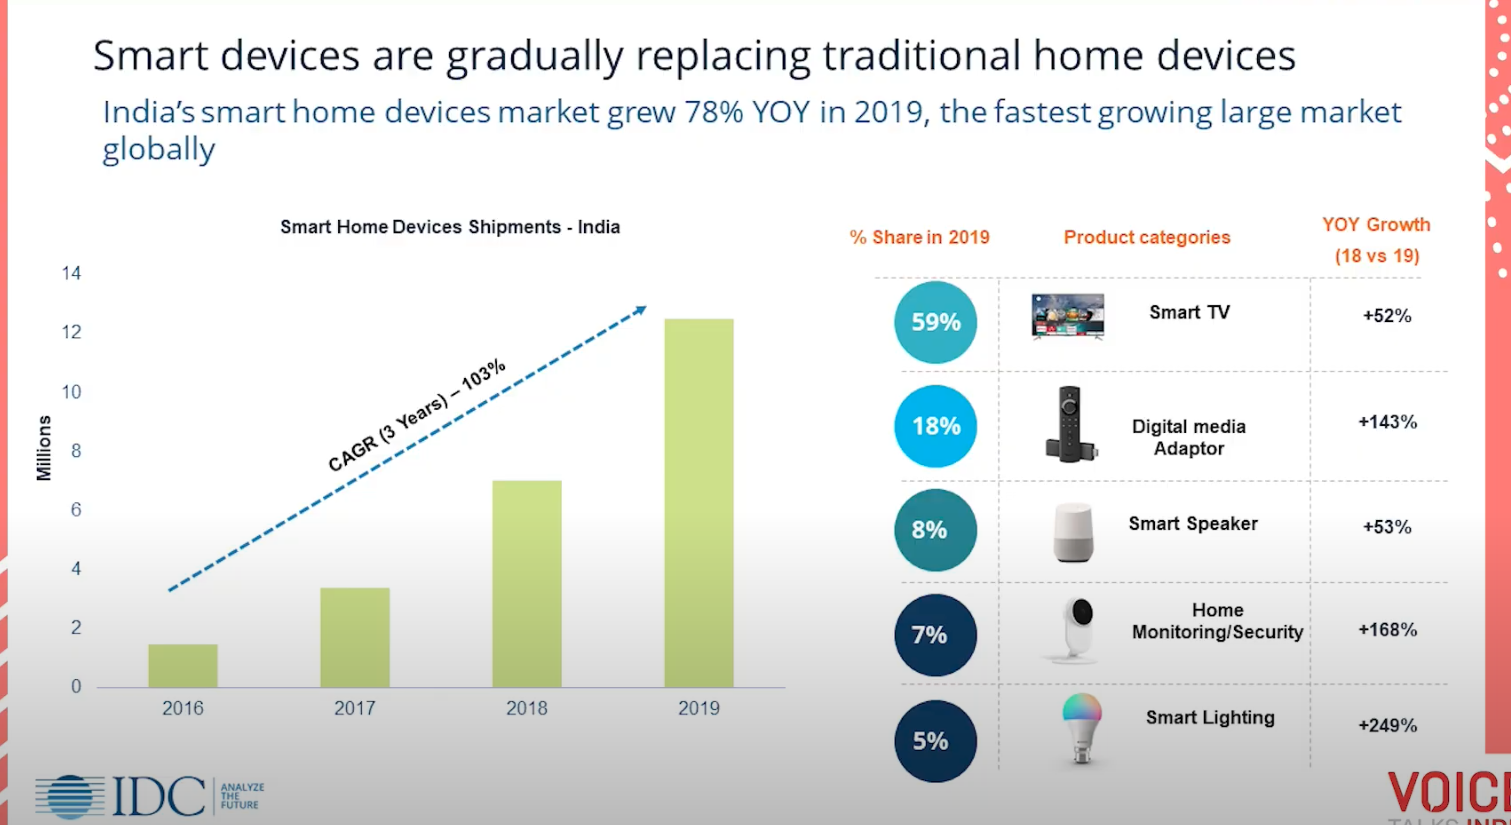 Growth of Smart home devices in India from 2018 to 2019 has been 78%